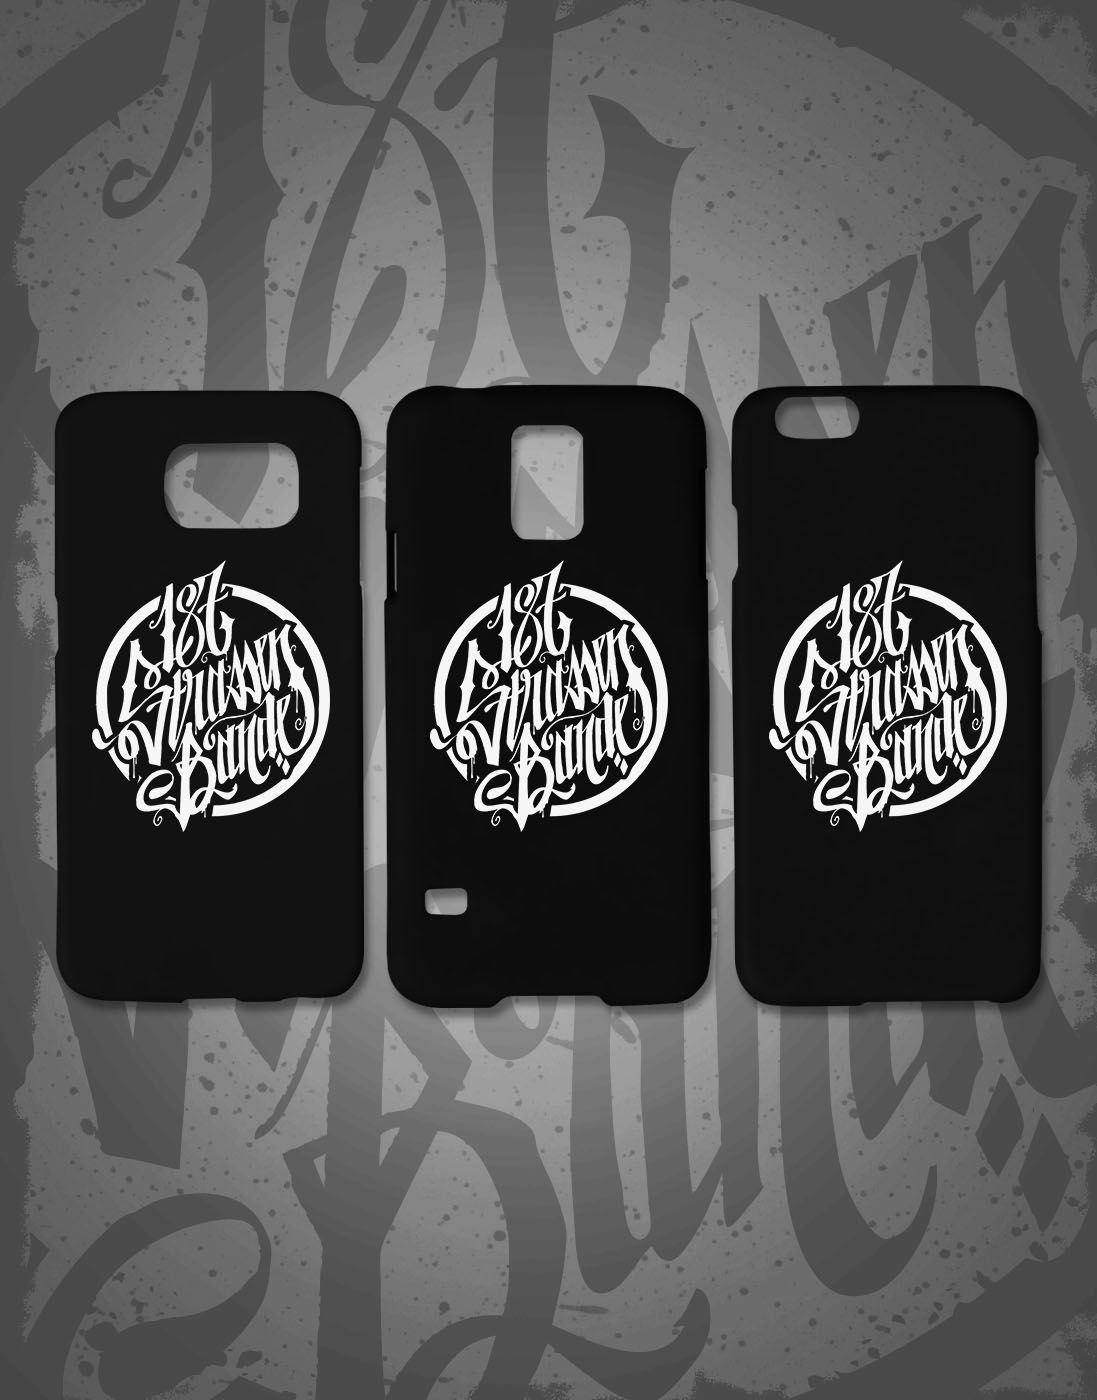 19665df04a5 187 Strassenbande Phone Case Schwarz   Weiss Accessories in 2019 ...